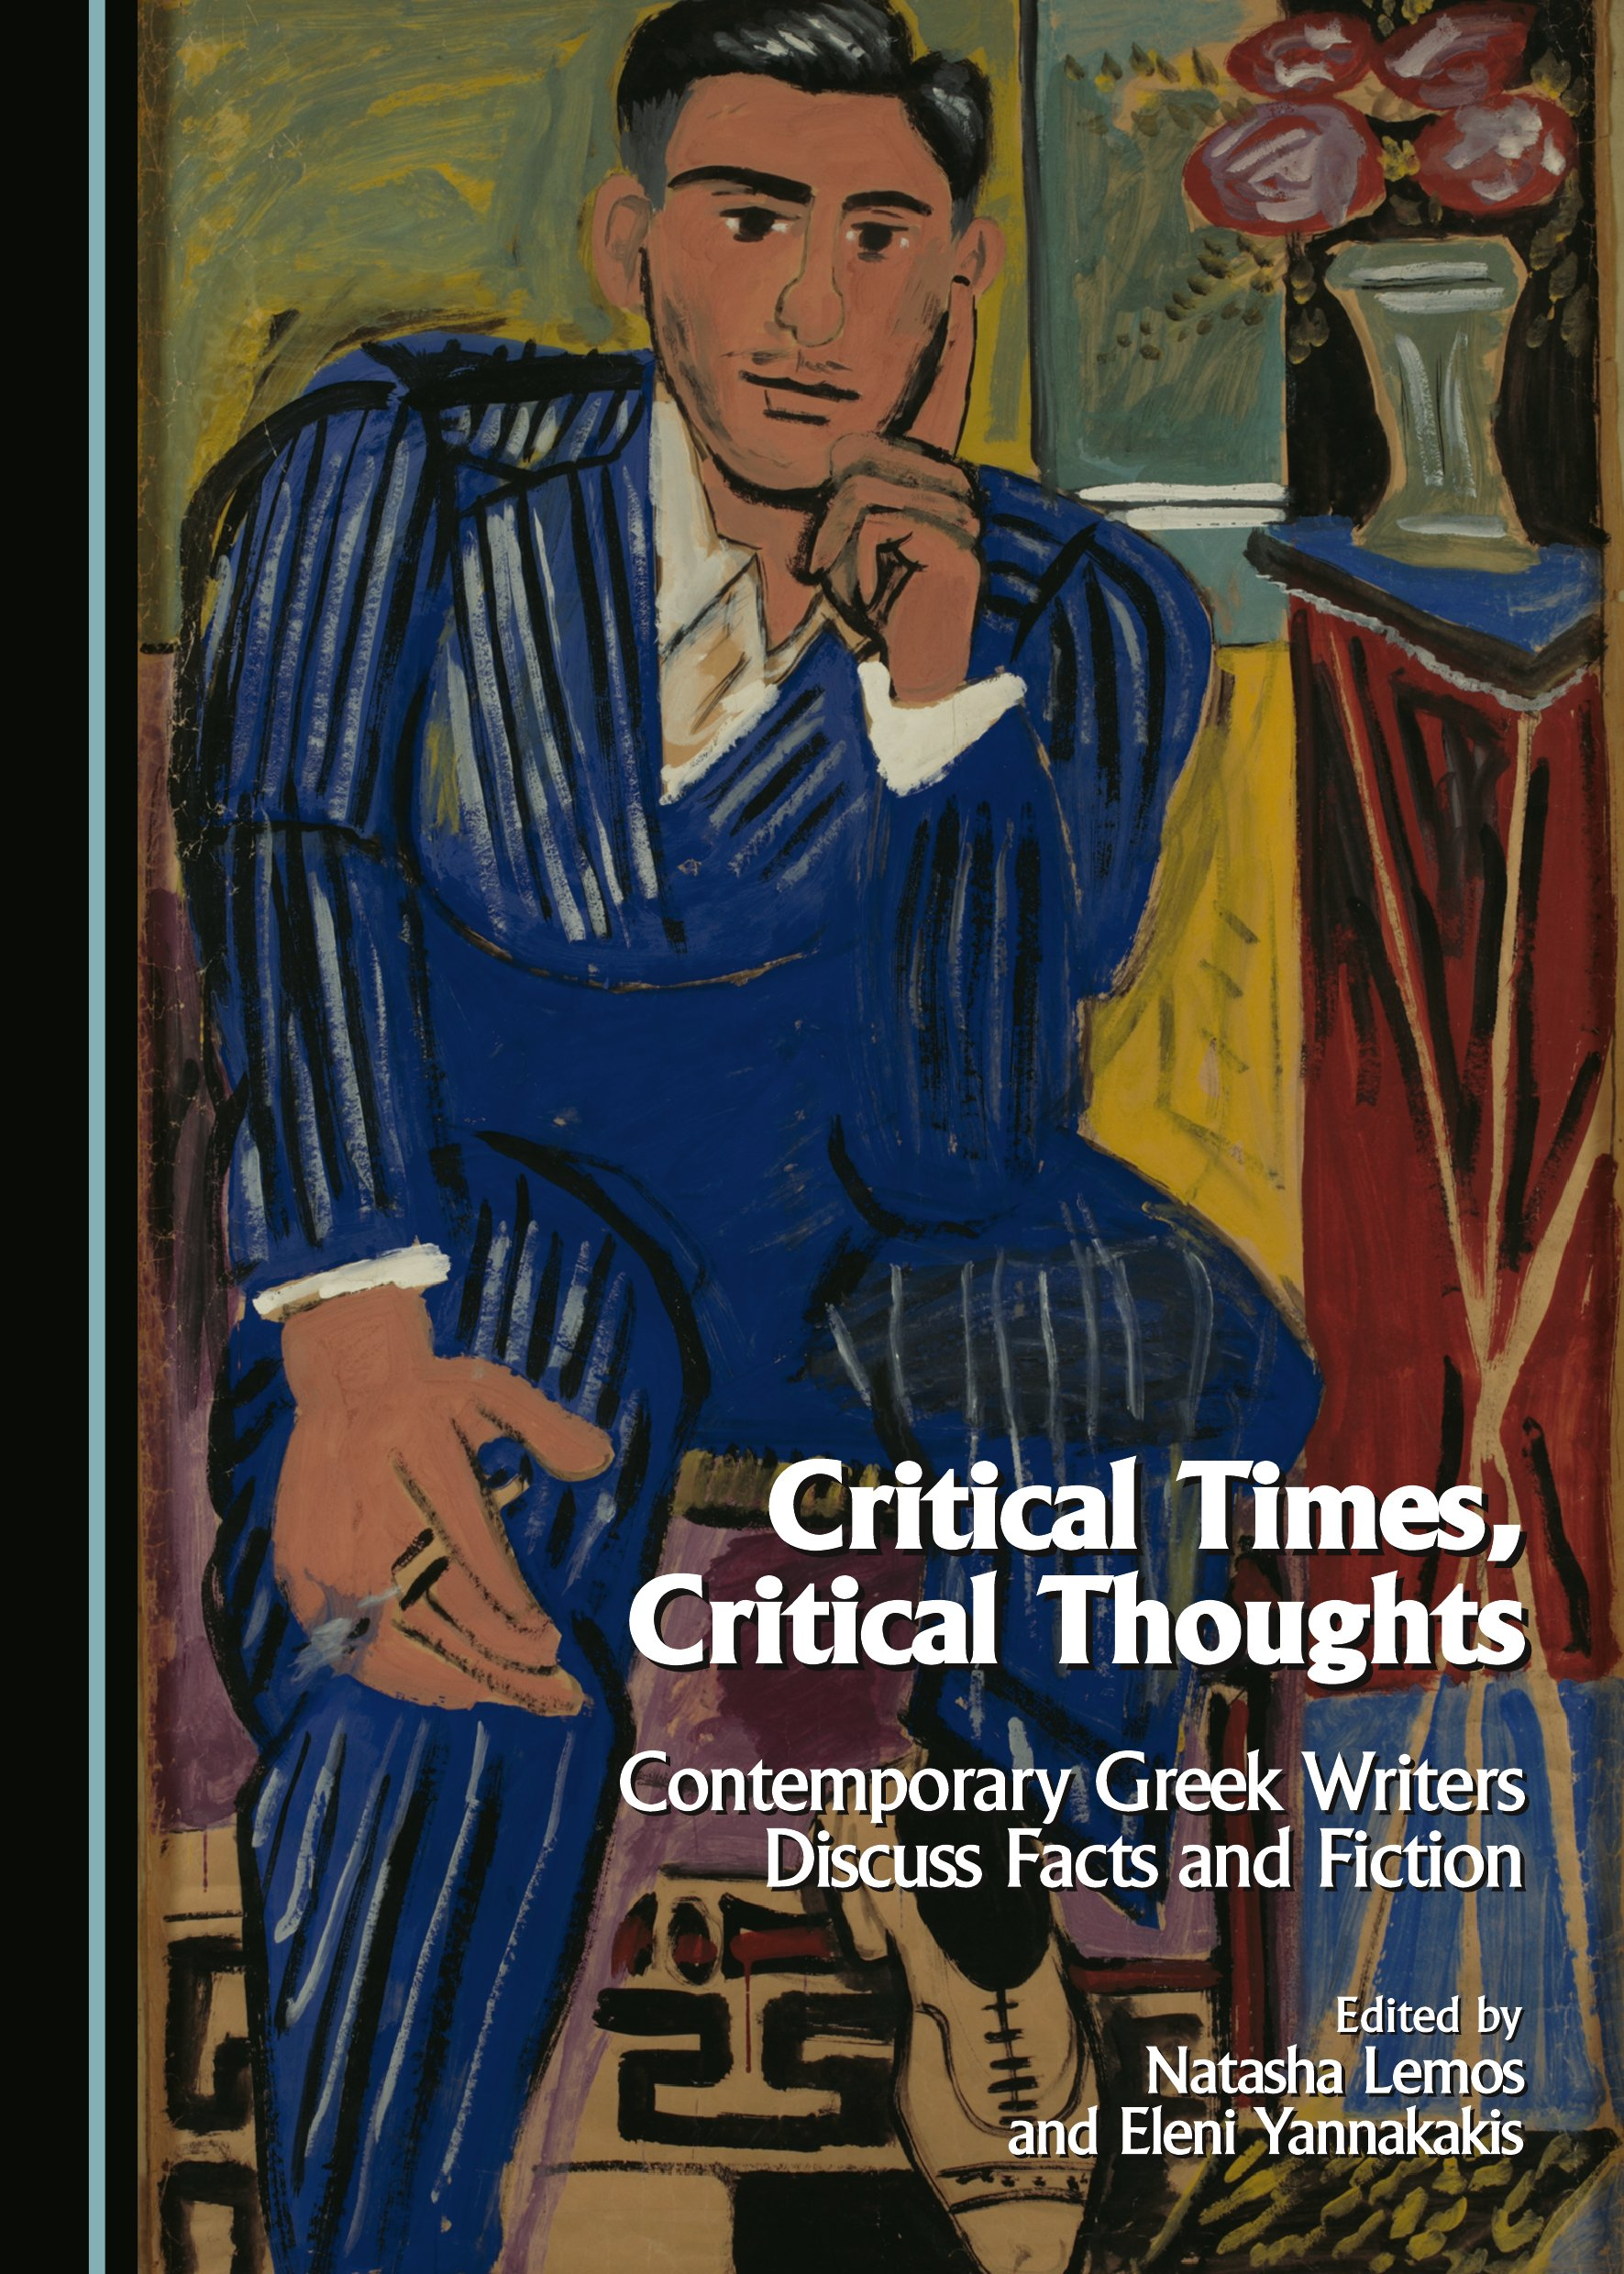 Critical Times, Critical Thoughts: Contemporary Greek Writers Discuss Facts and Fiction